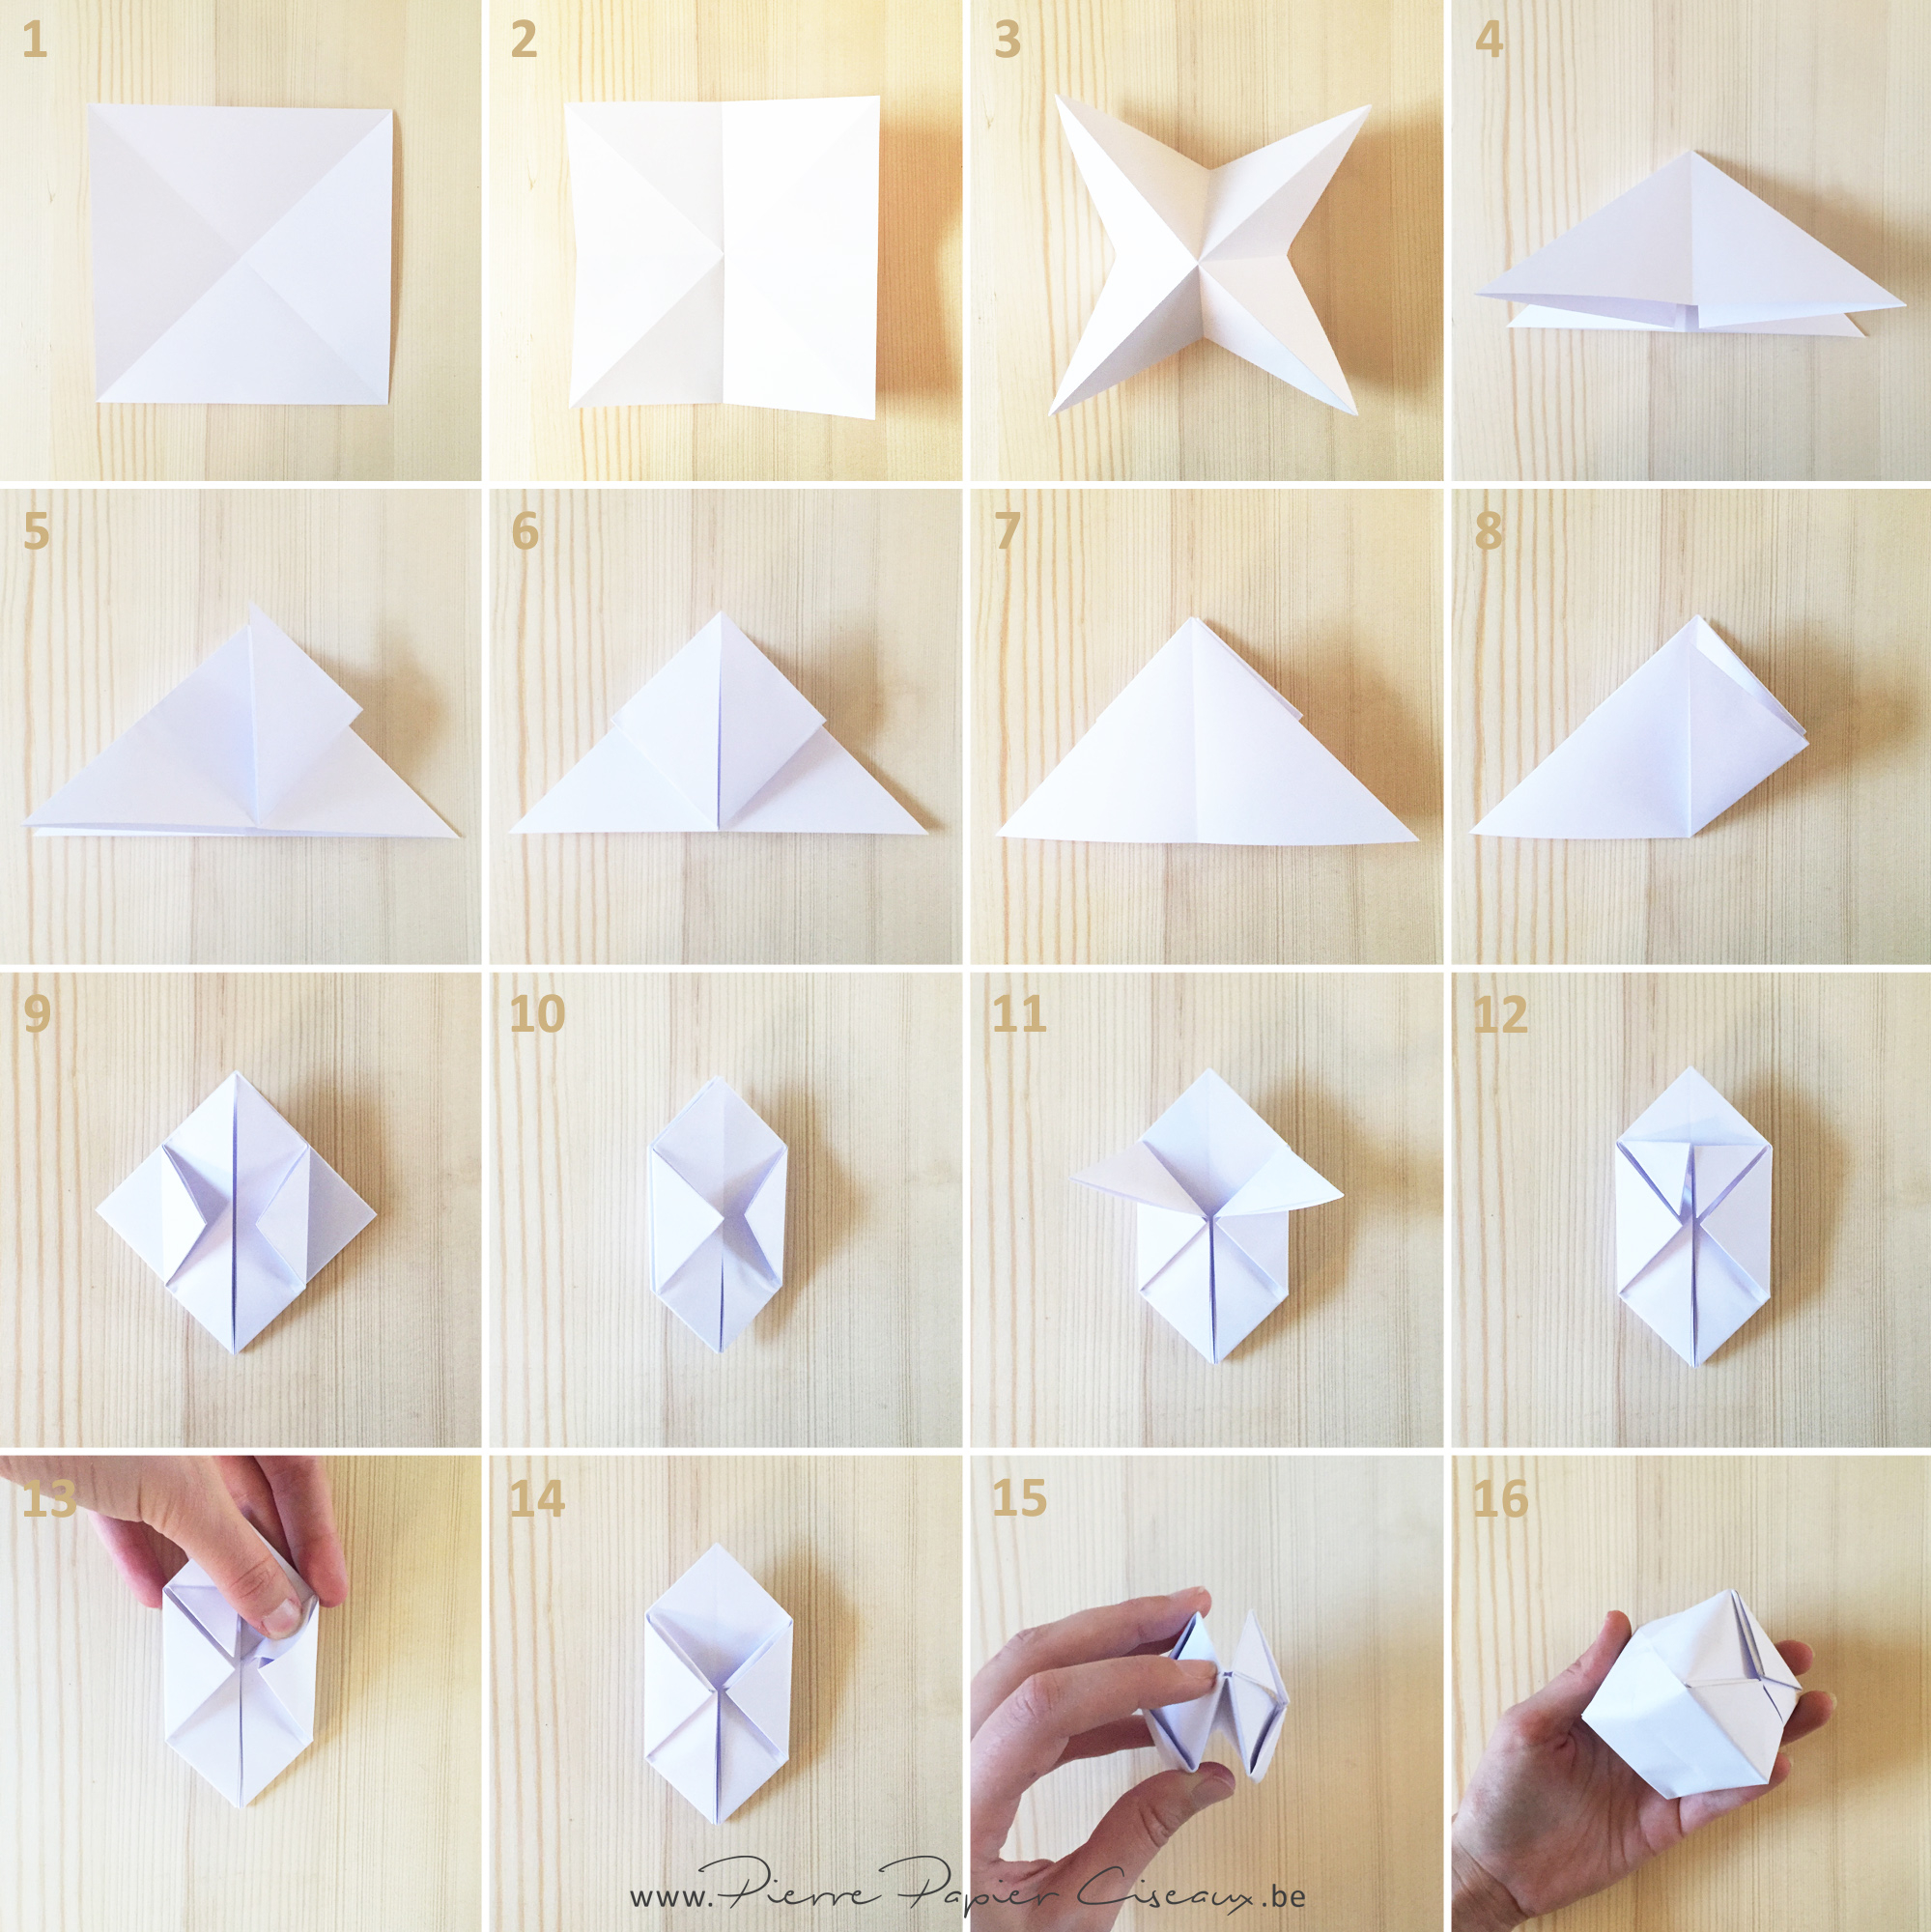 free tapes de pliage pour raliser une boule origami with guirlande lumineuse boule chinoise. Black Bedroom Furniture Sets. Home Design Ideas